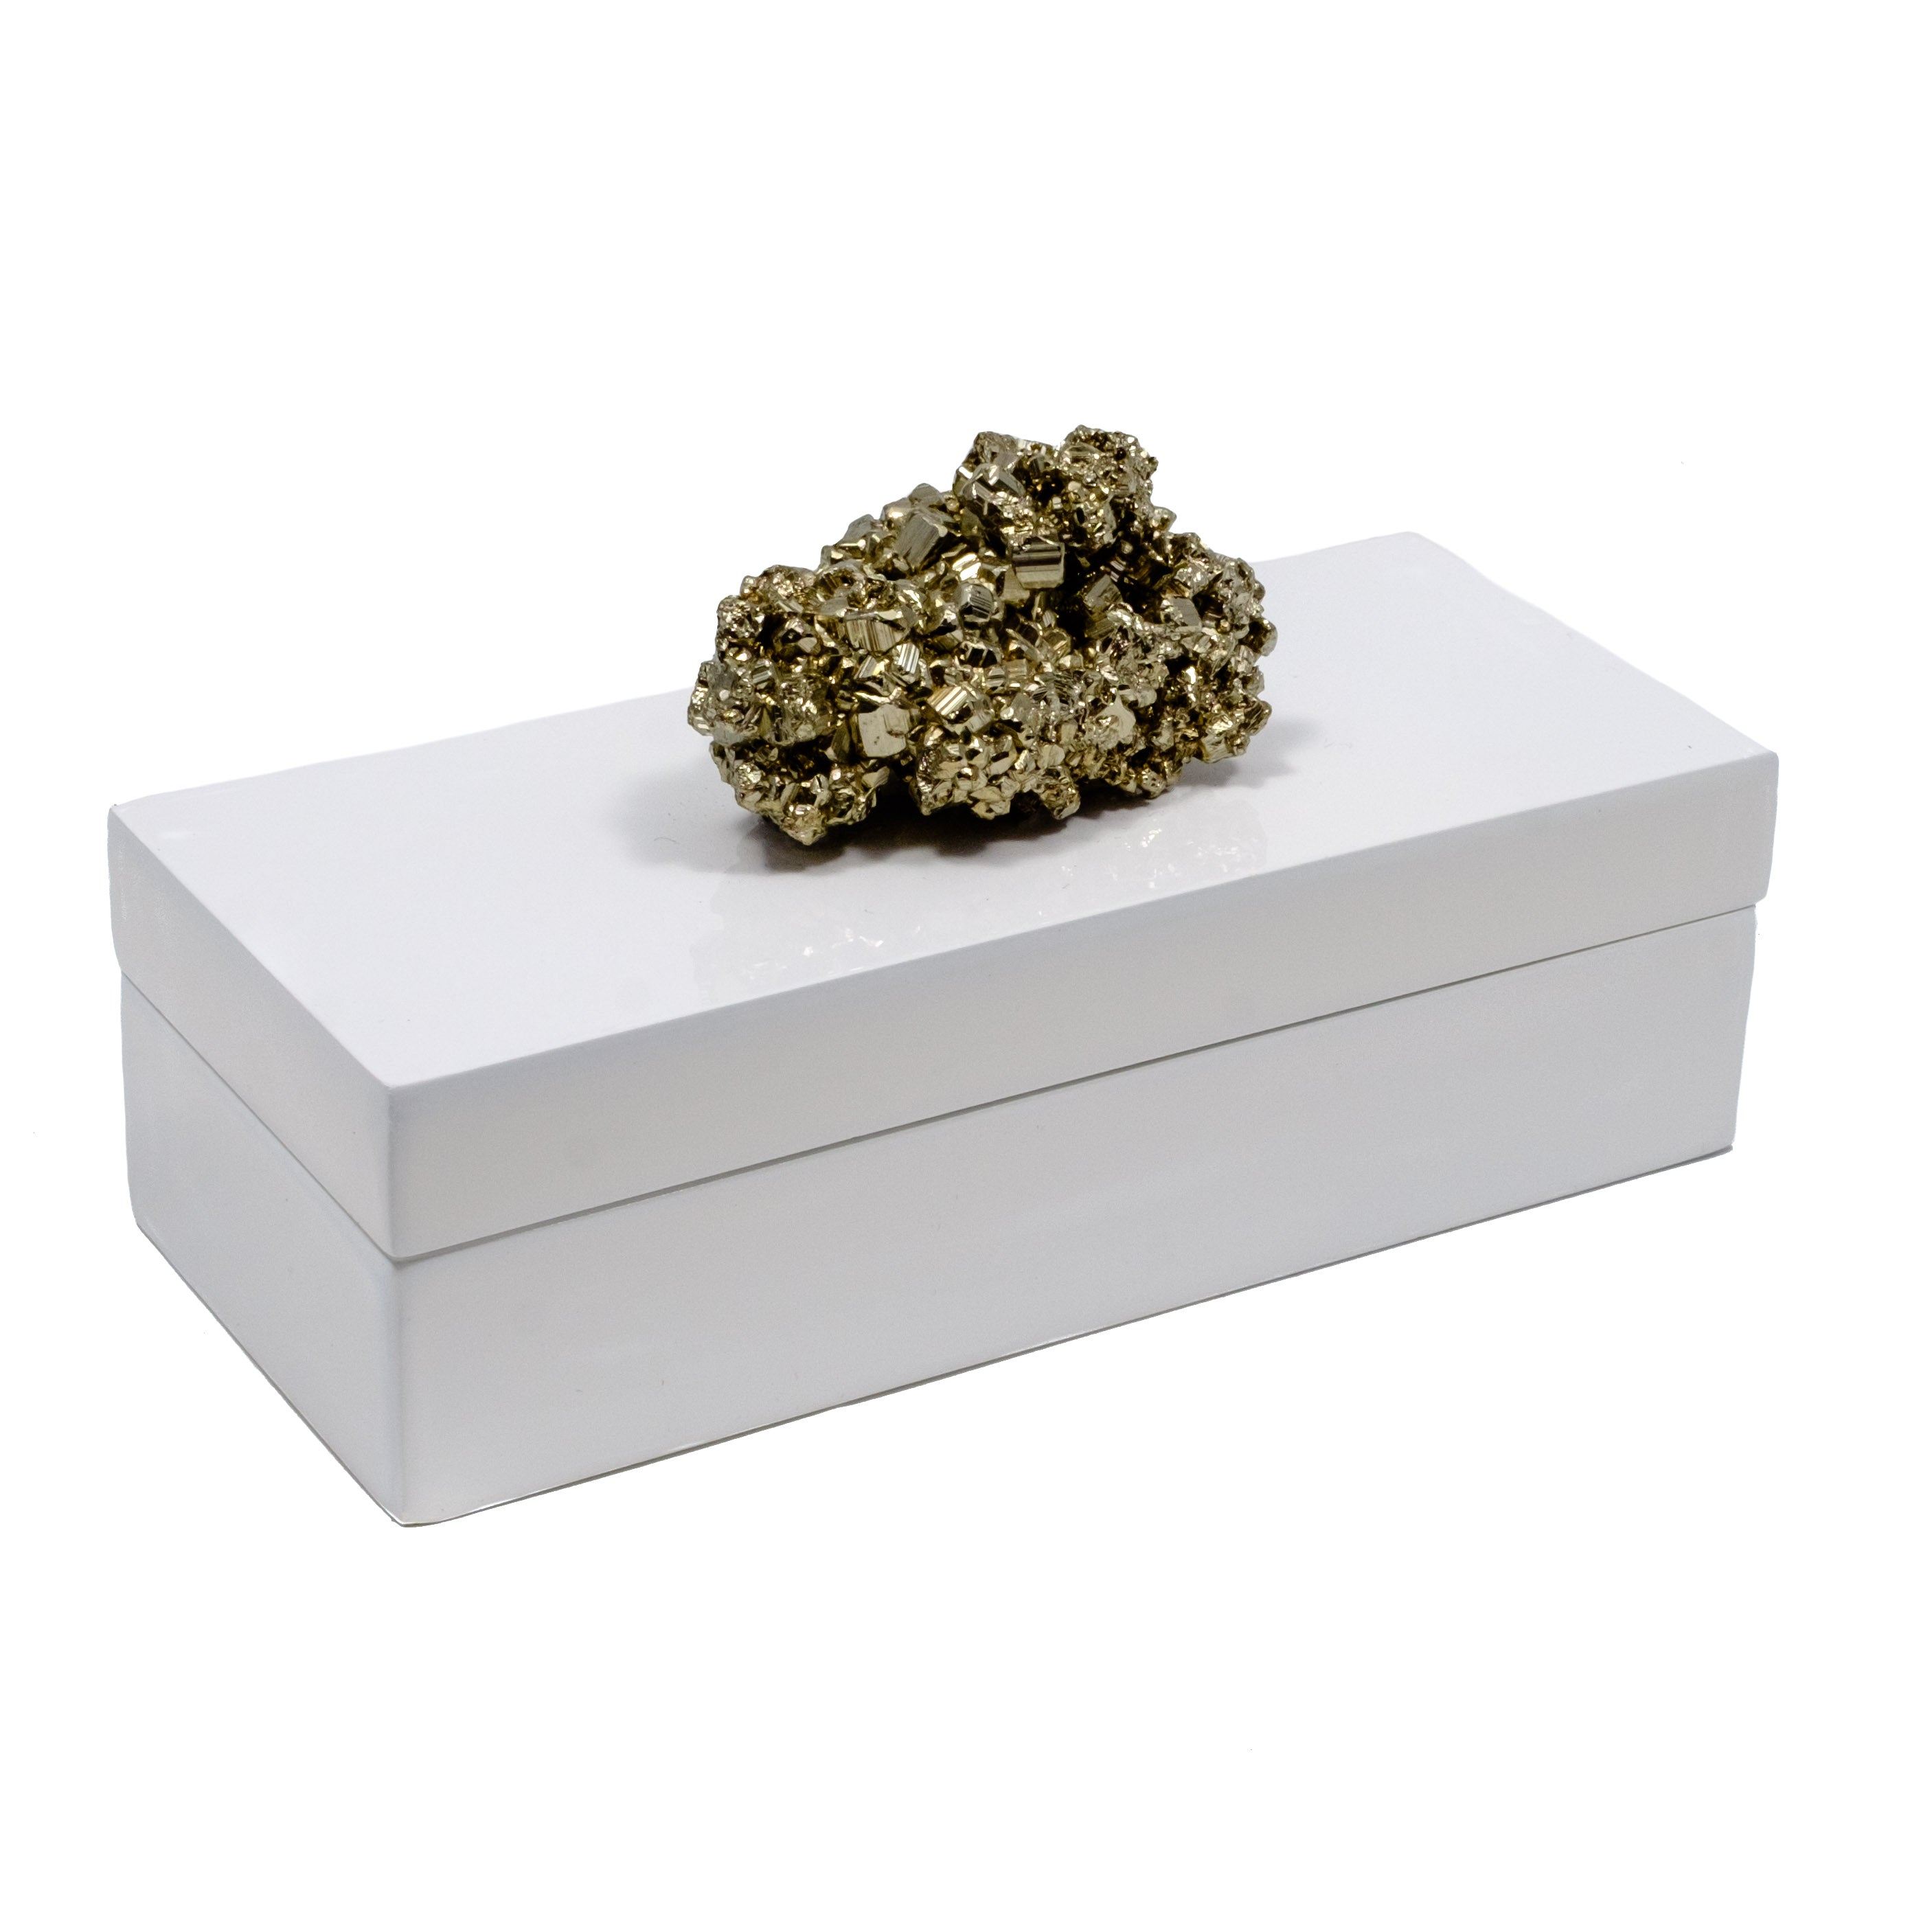 White Lacquer box with a pyrite specimen.